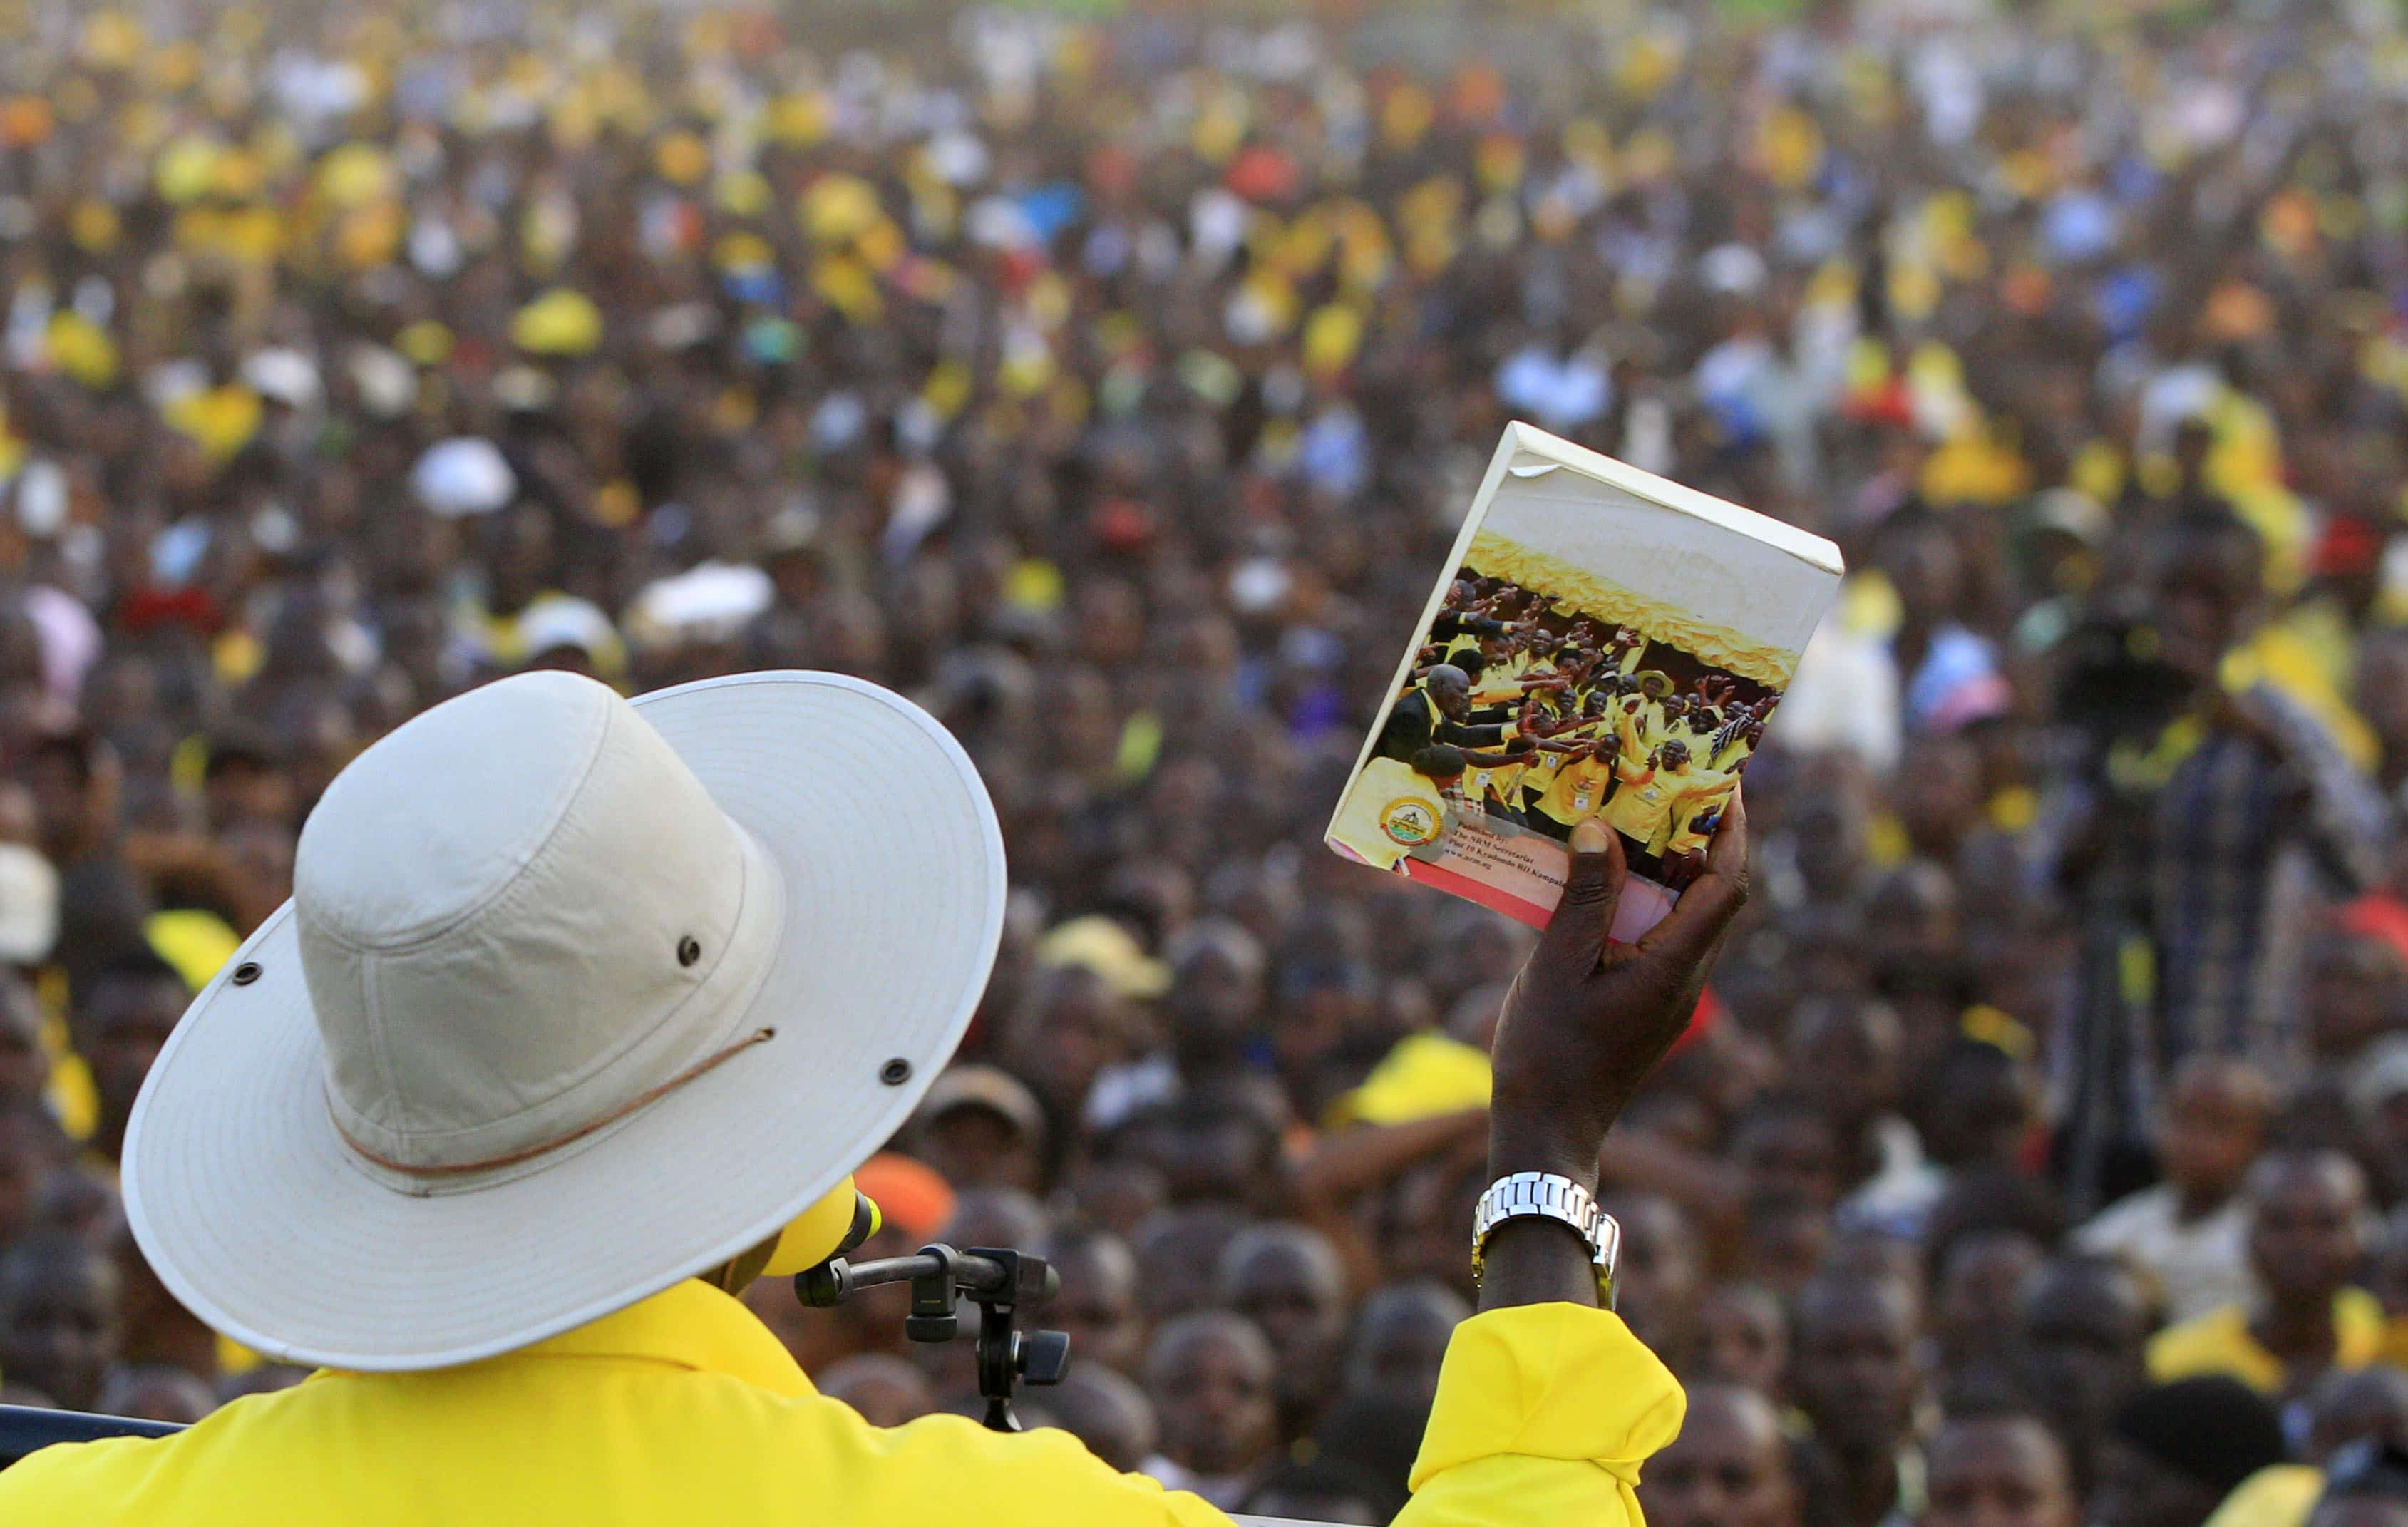 Ugandan president Yoweri Museveni shows his manifesto to supporters during a campaign rally in Entebbe, Uganda, 10 February 2016,  REUTERS/James Akena